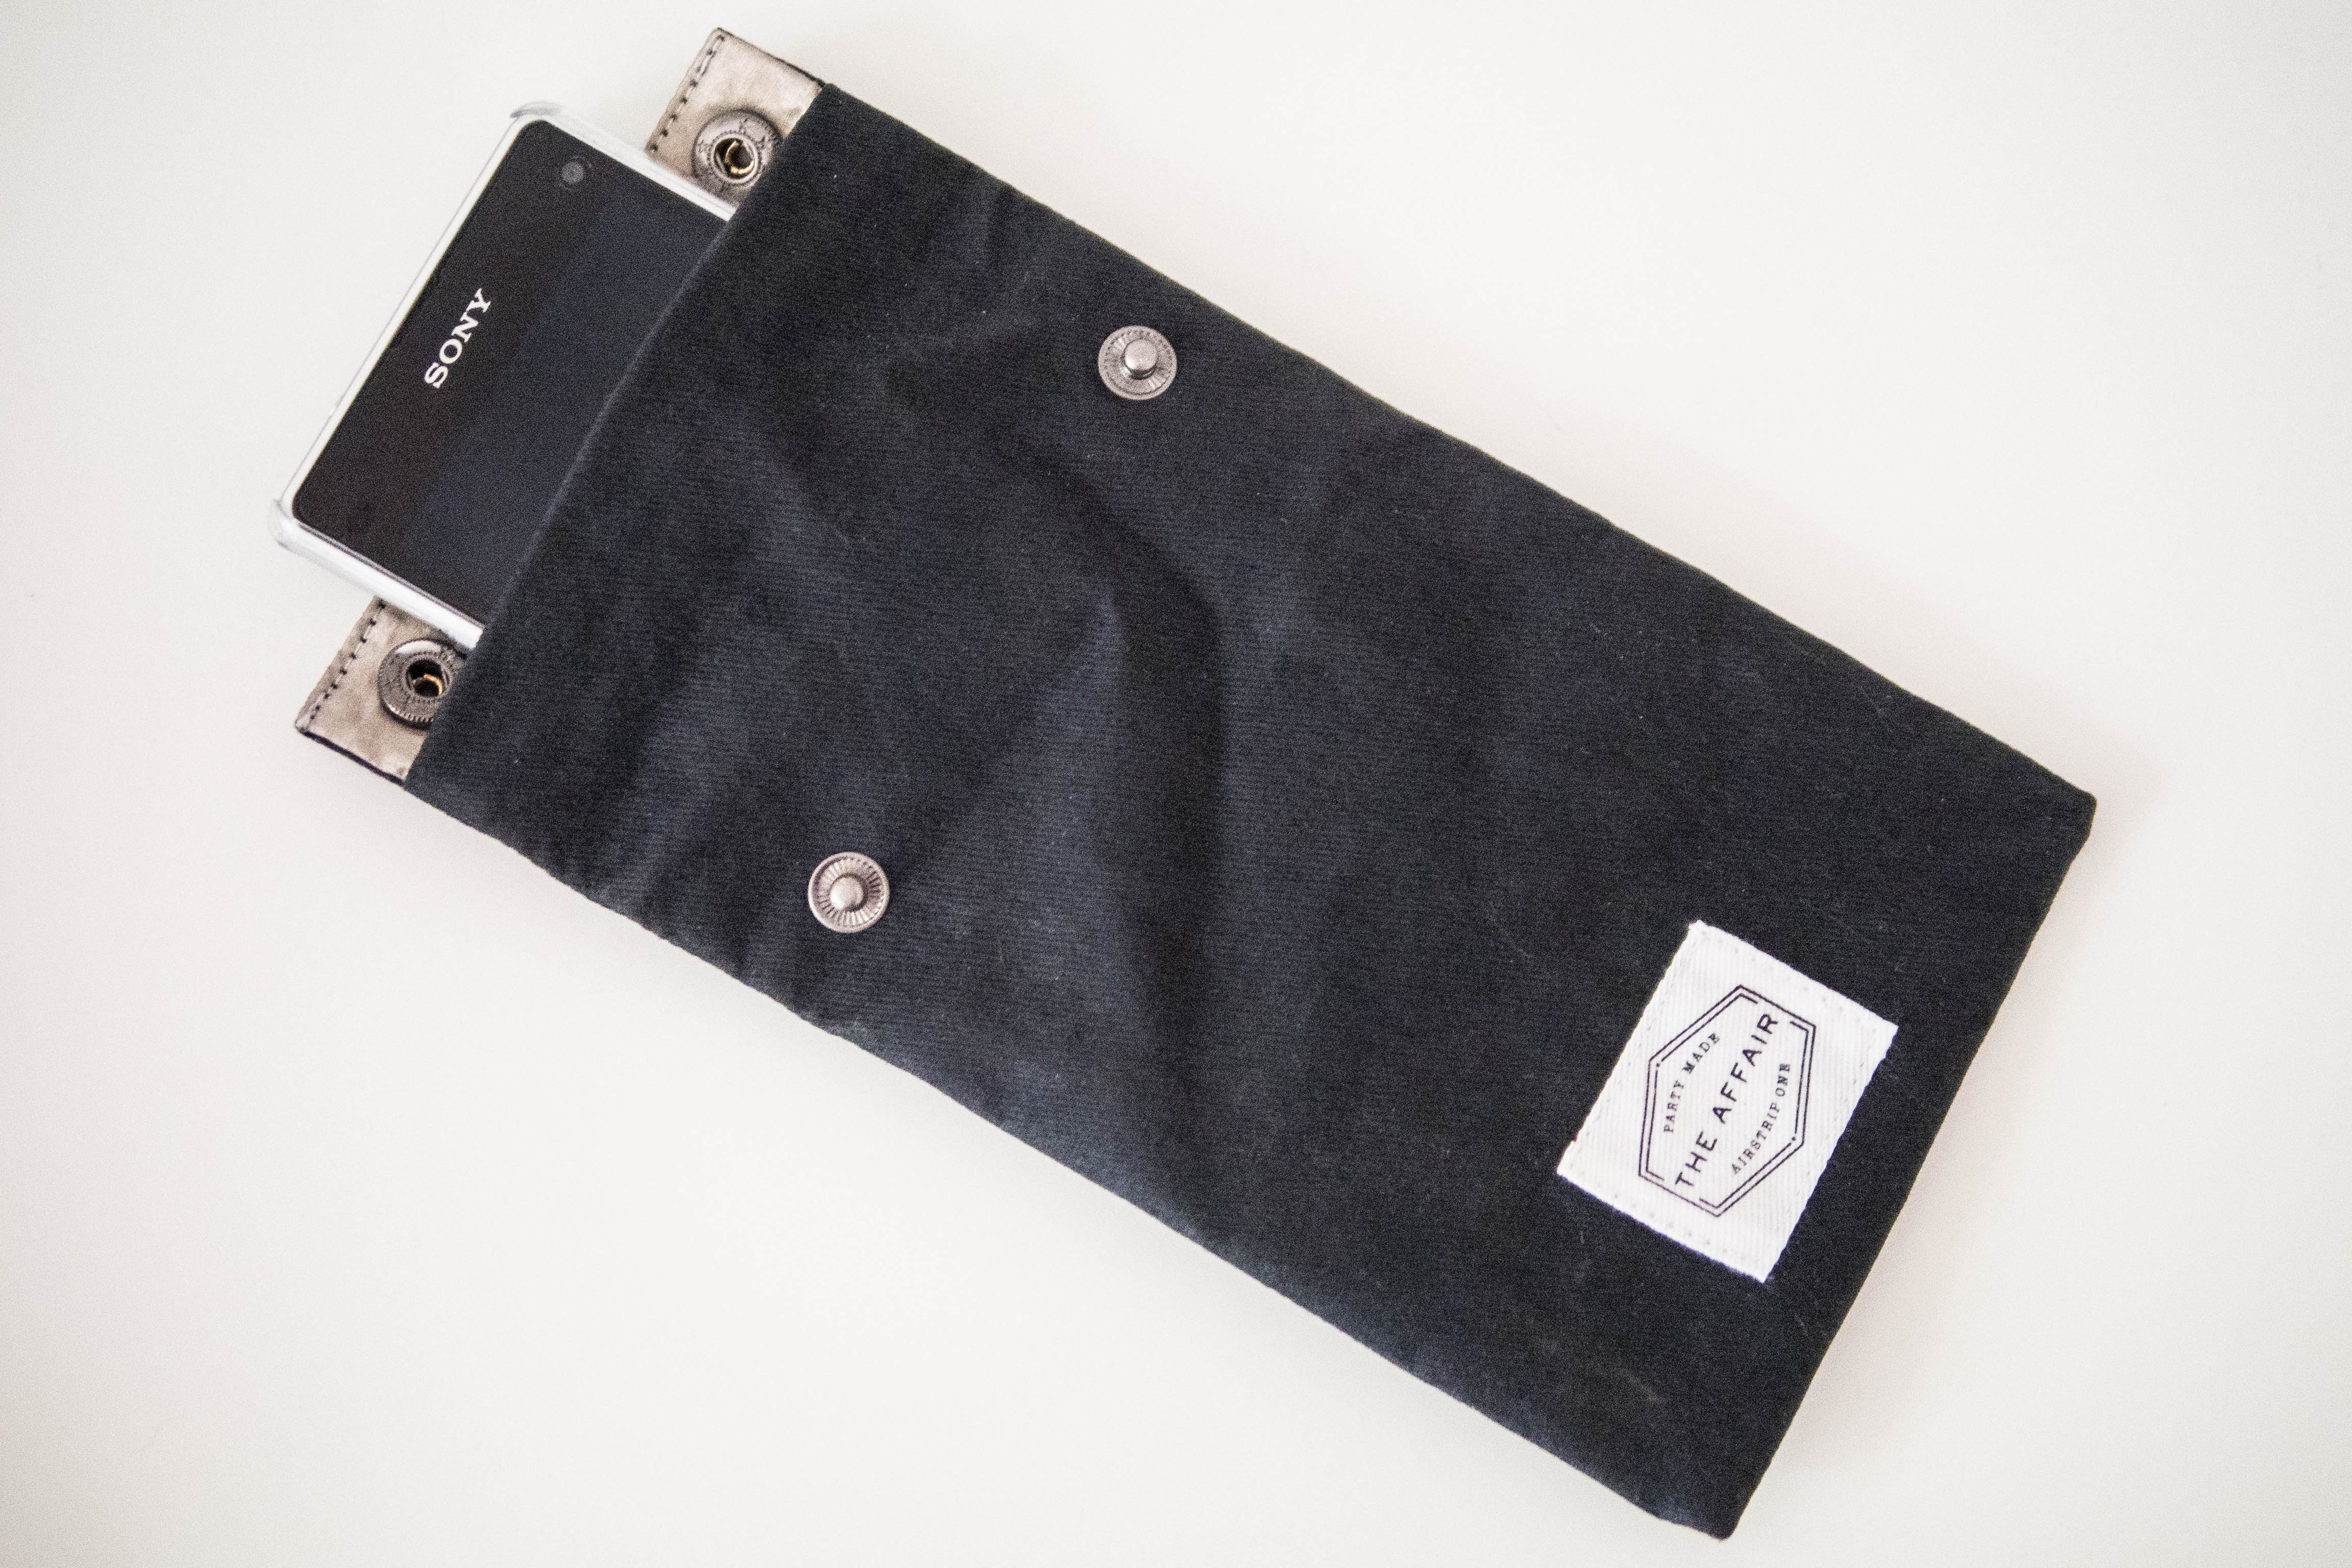 The Affair's UnPocket, a privacy pouch for phones